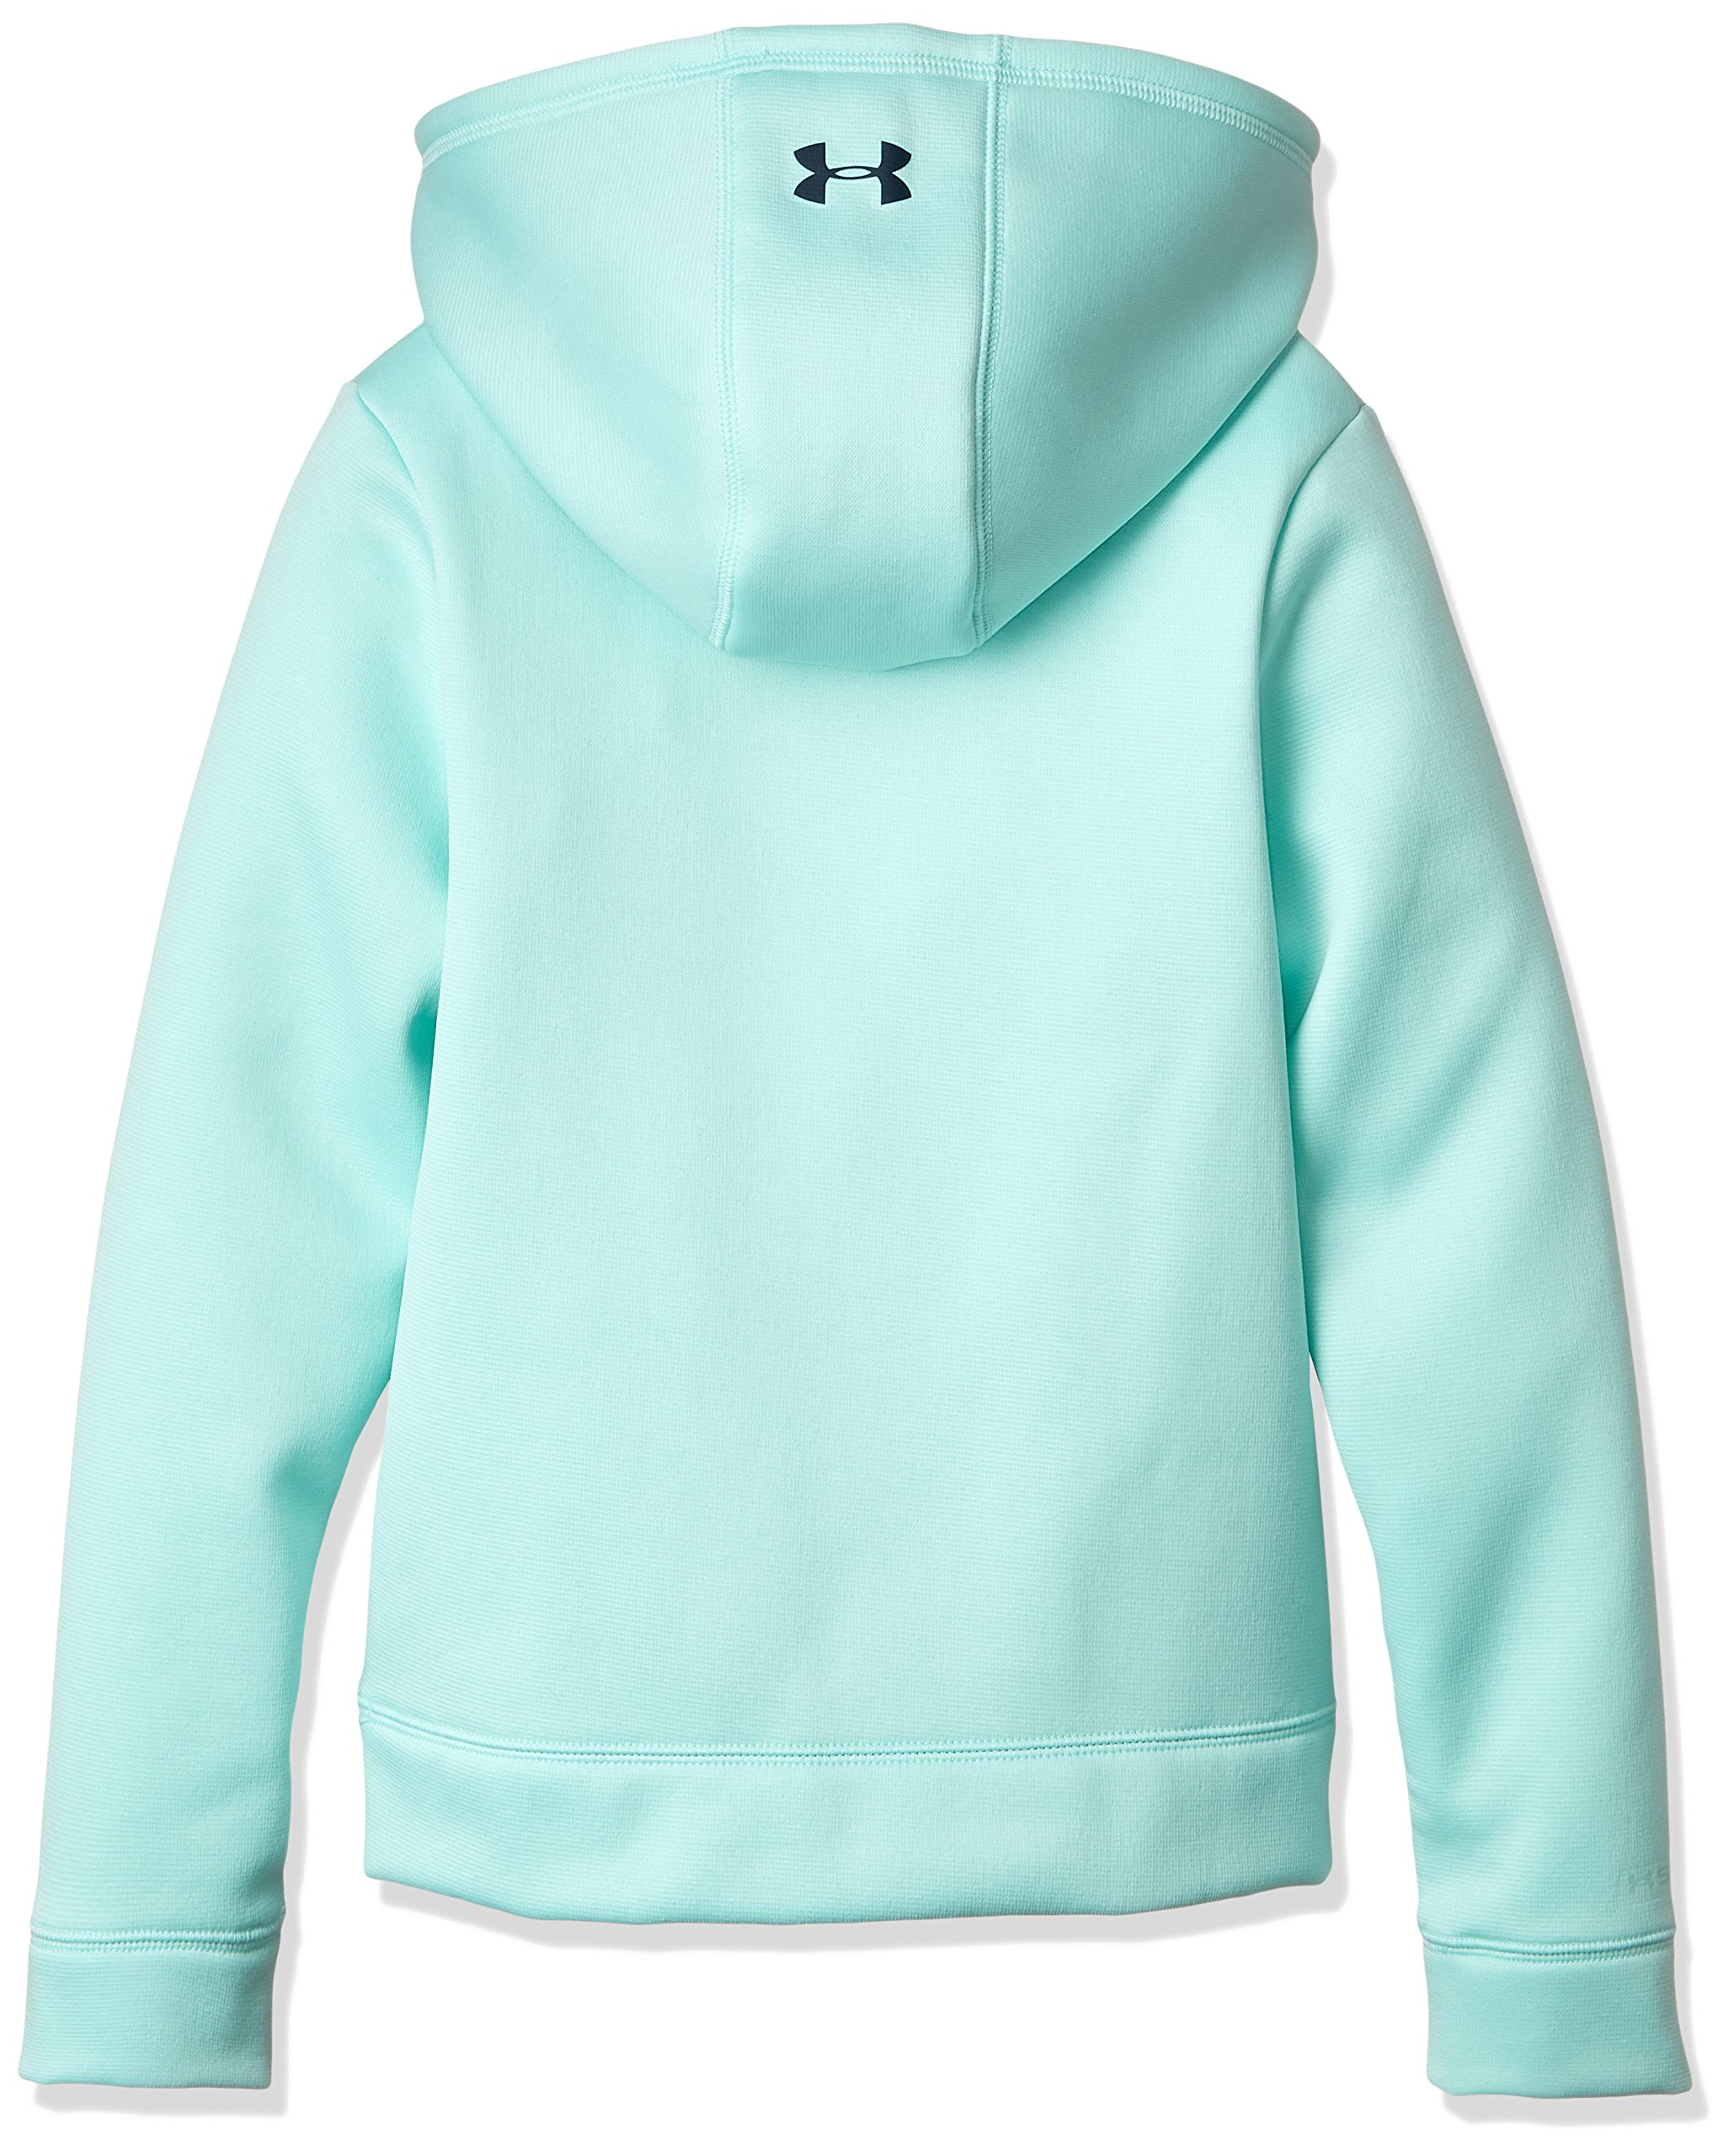 Under Armour Girls Armour Fleece Wordmark Hoodie, Blue Infinity/Blue, Small / 8 Big Kids by Under Armour (Image #2)